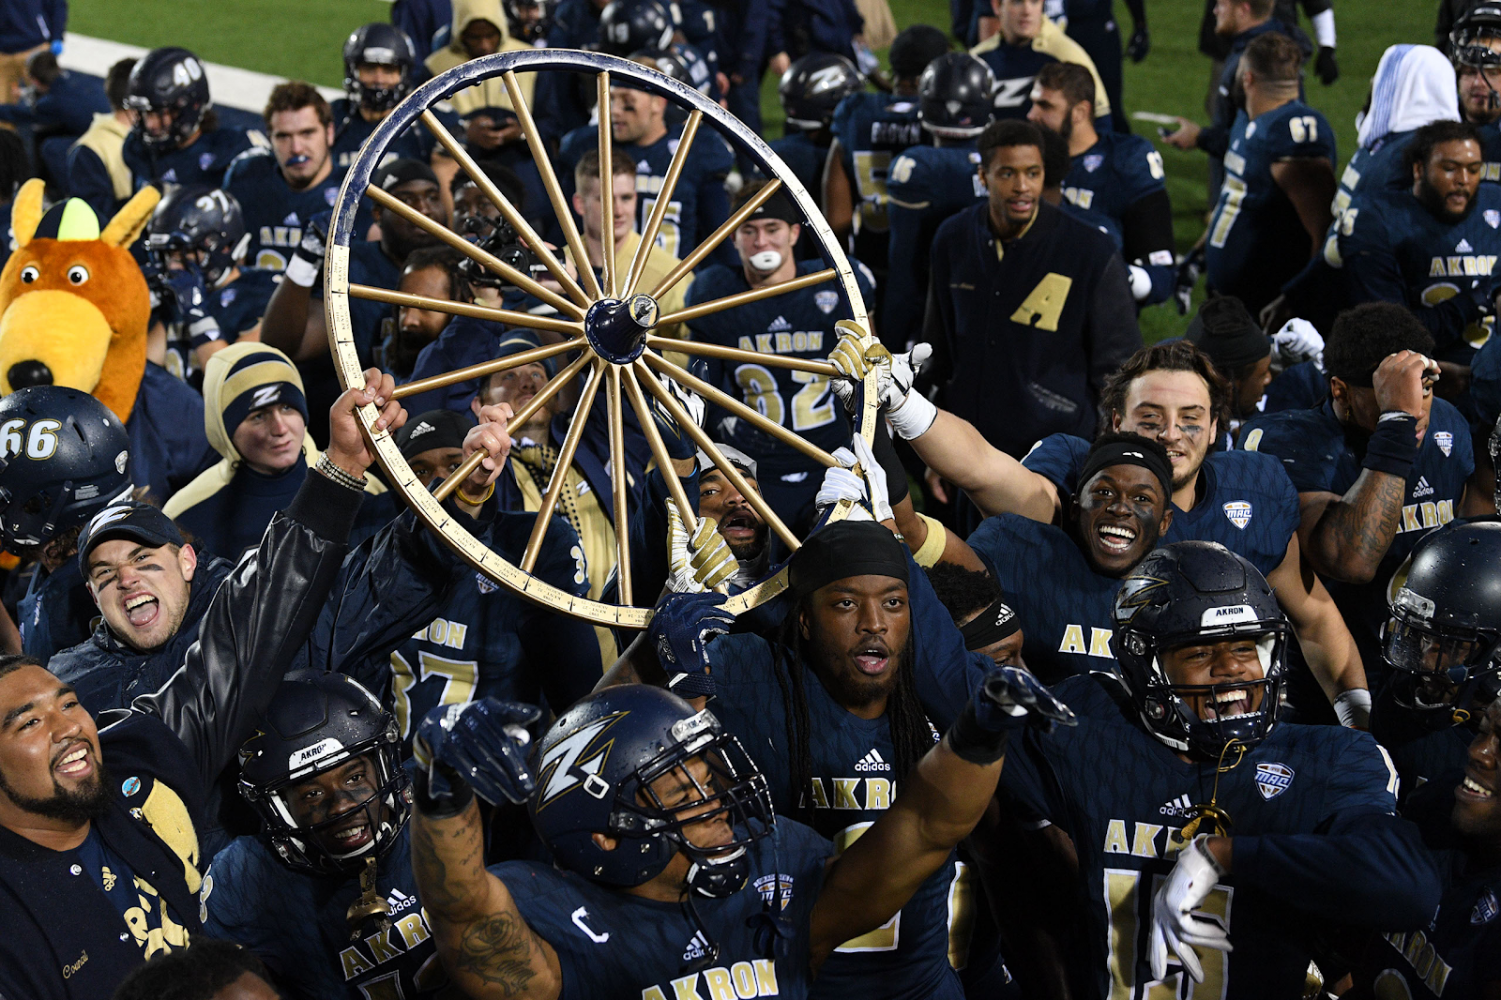 Zips football players celebrate with the Wagon Wheel after the Oct. 20 match against Kent State with a 24-23 win. (Photo courtesy of the Akron Zips)